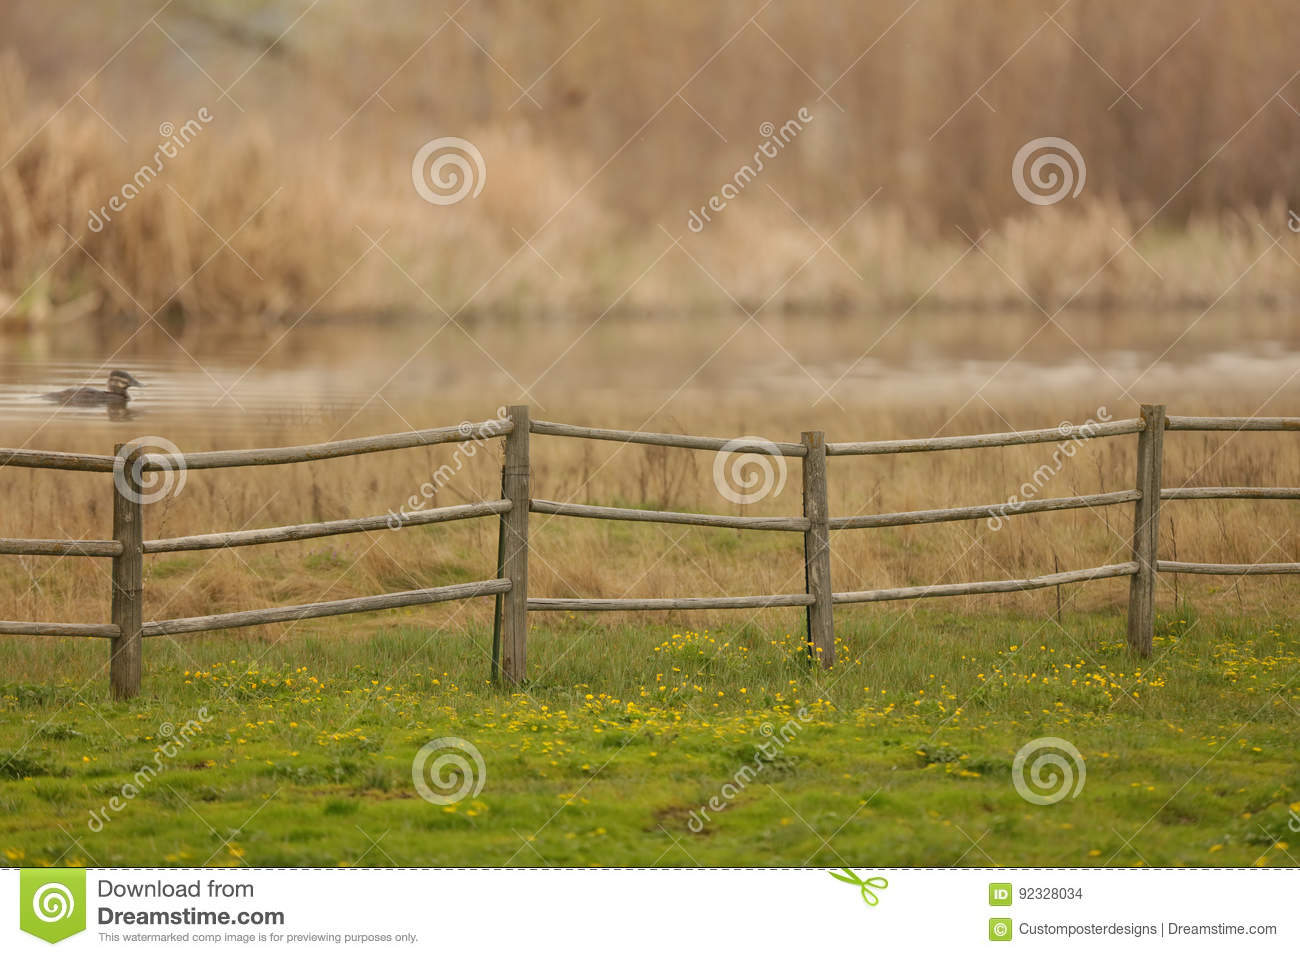 A rural country scene with a wooden fence, green grass, yellow wildflowers, a duck swimming and a blurred background.